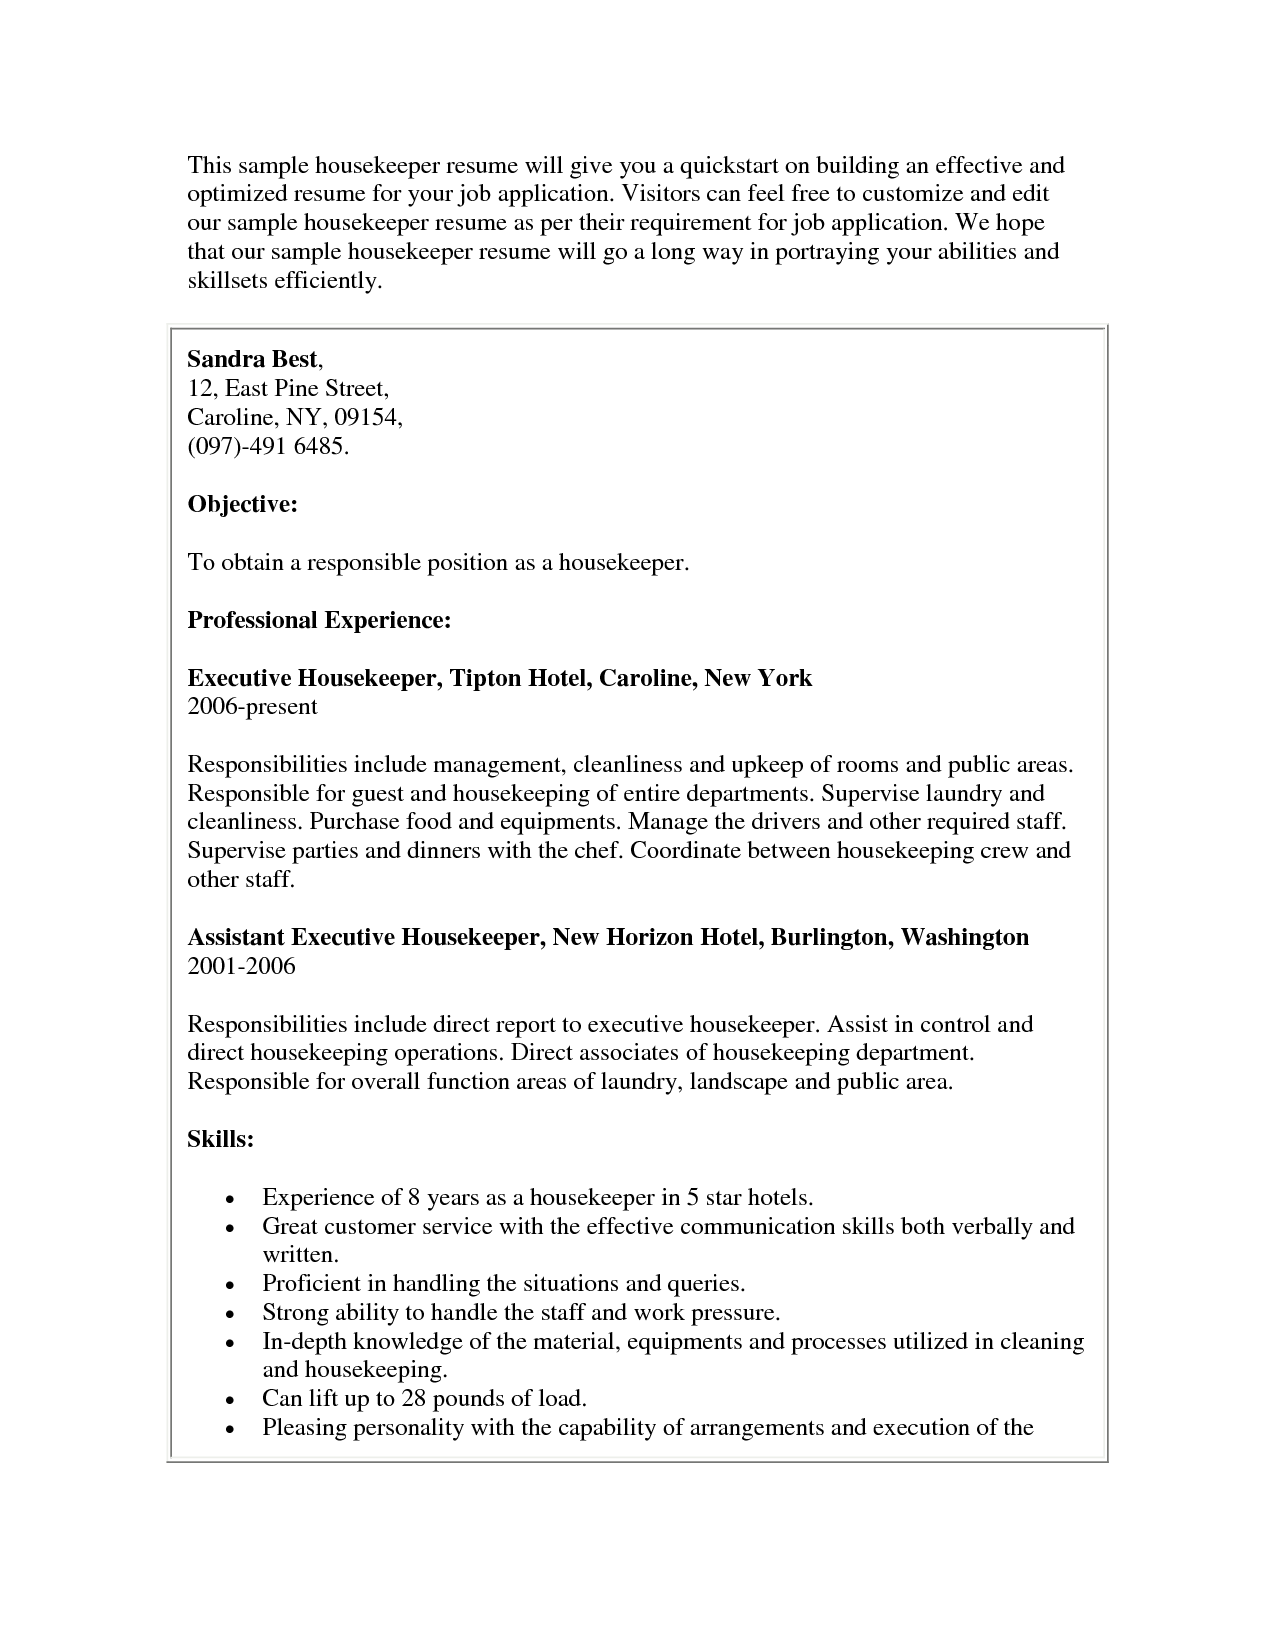 Housekeeper Sample Housekeeping Resume Cover Letter Job  Housekeeping Sample Resume